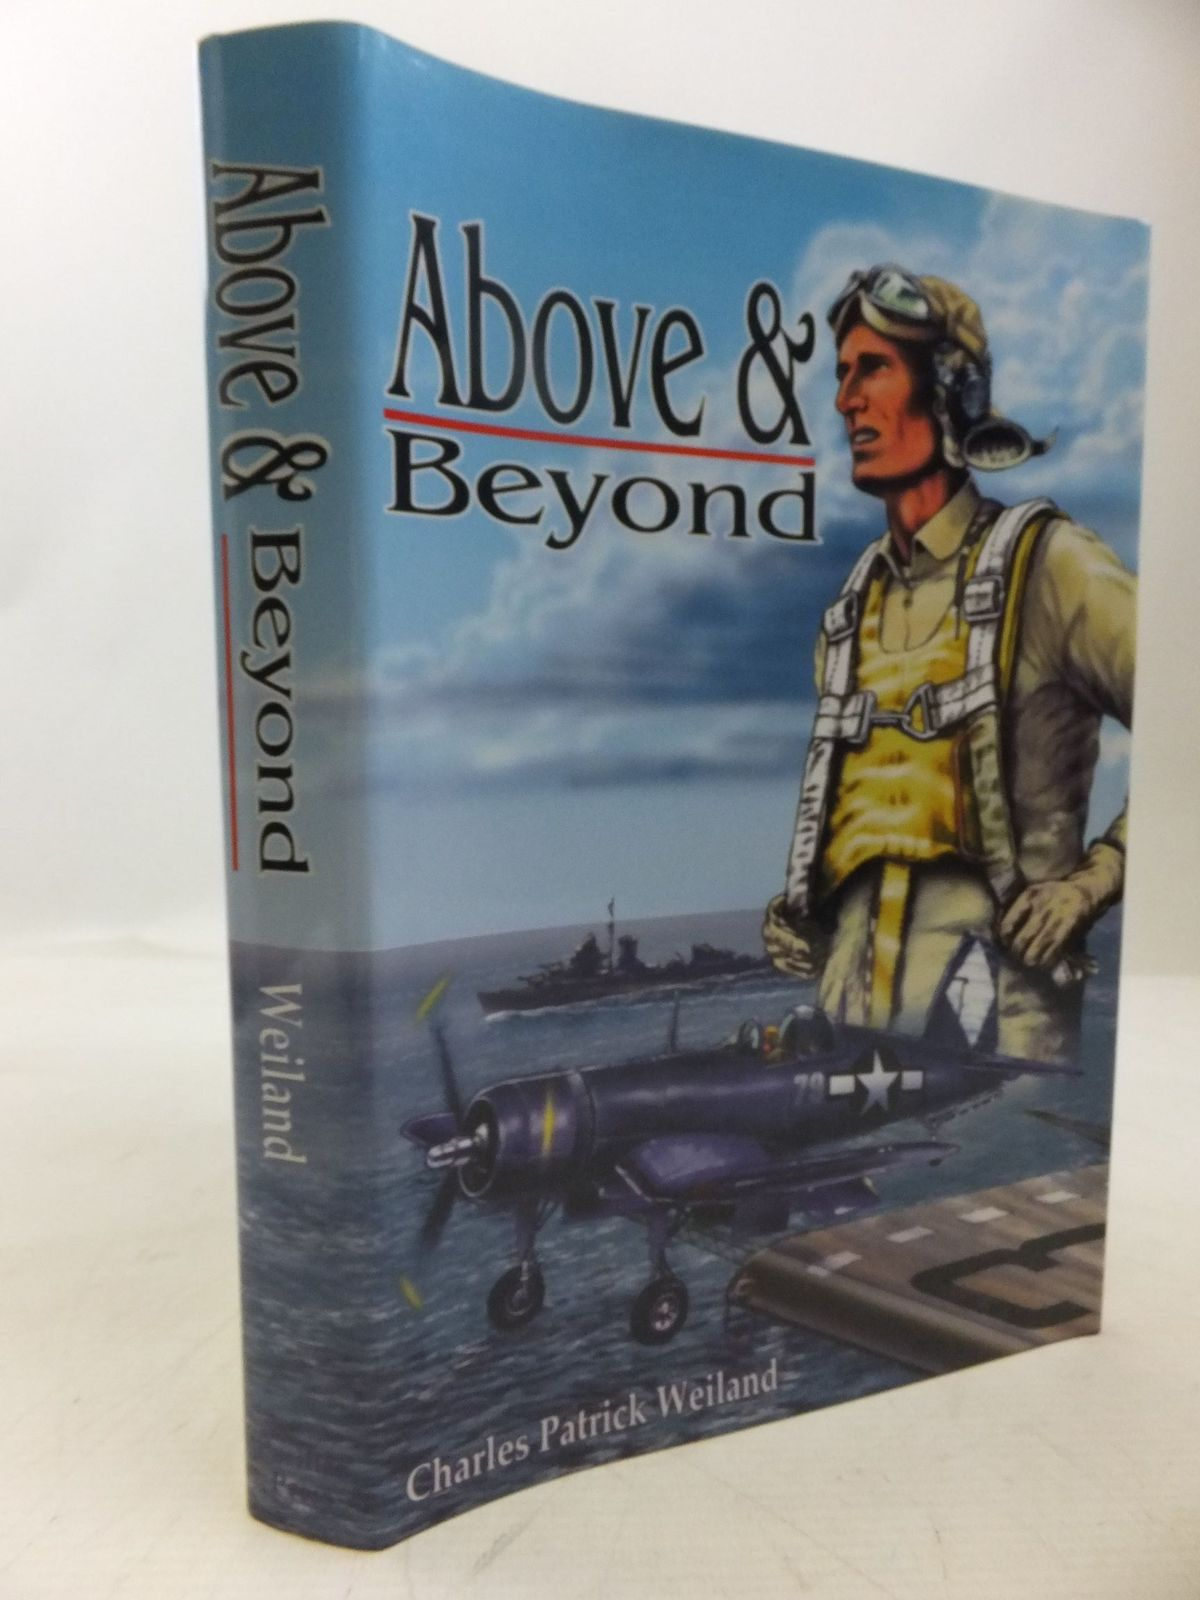 Photo of ABOVE AND BEYOND written by Weiland, Charles Patrick published by Pacifica Press (STOCK CODE: 2118444)  for sale by Stella & Rose's Books